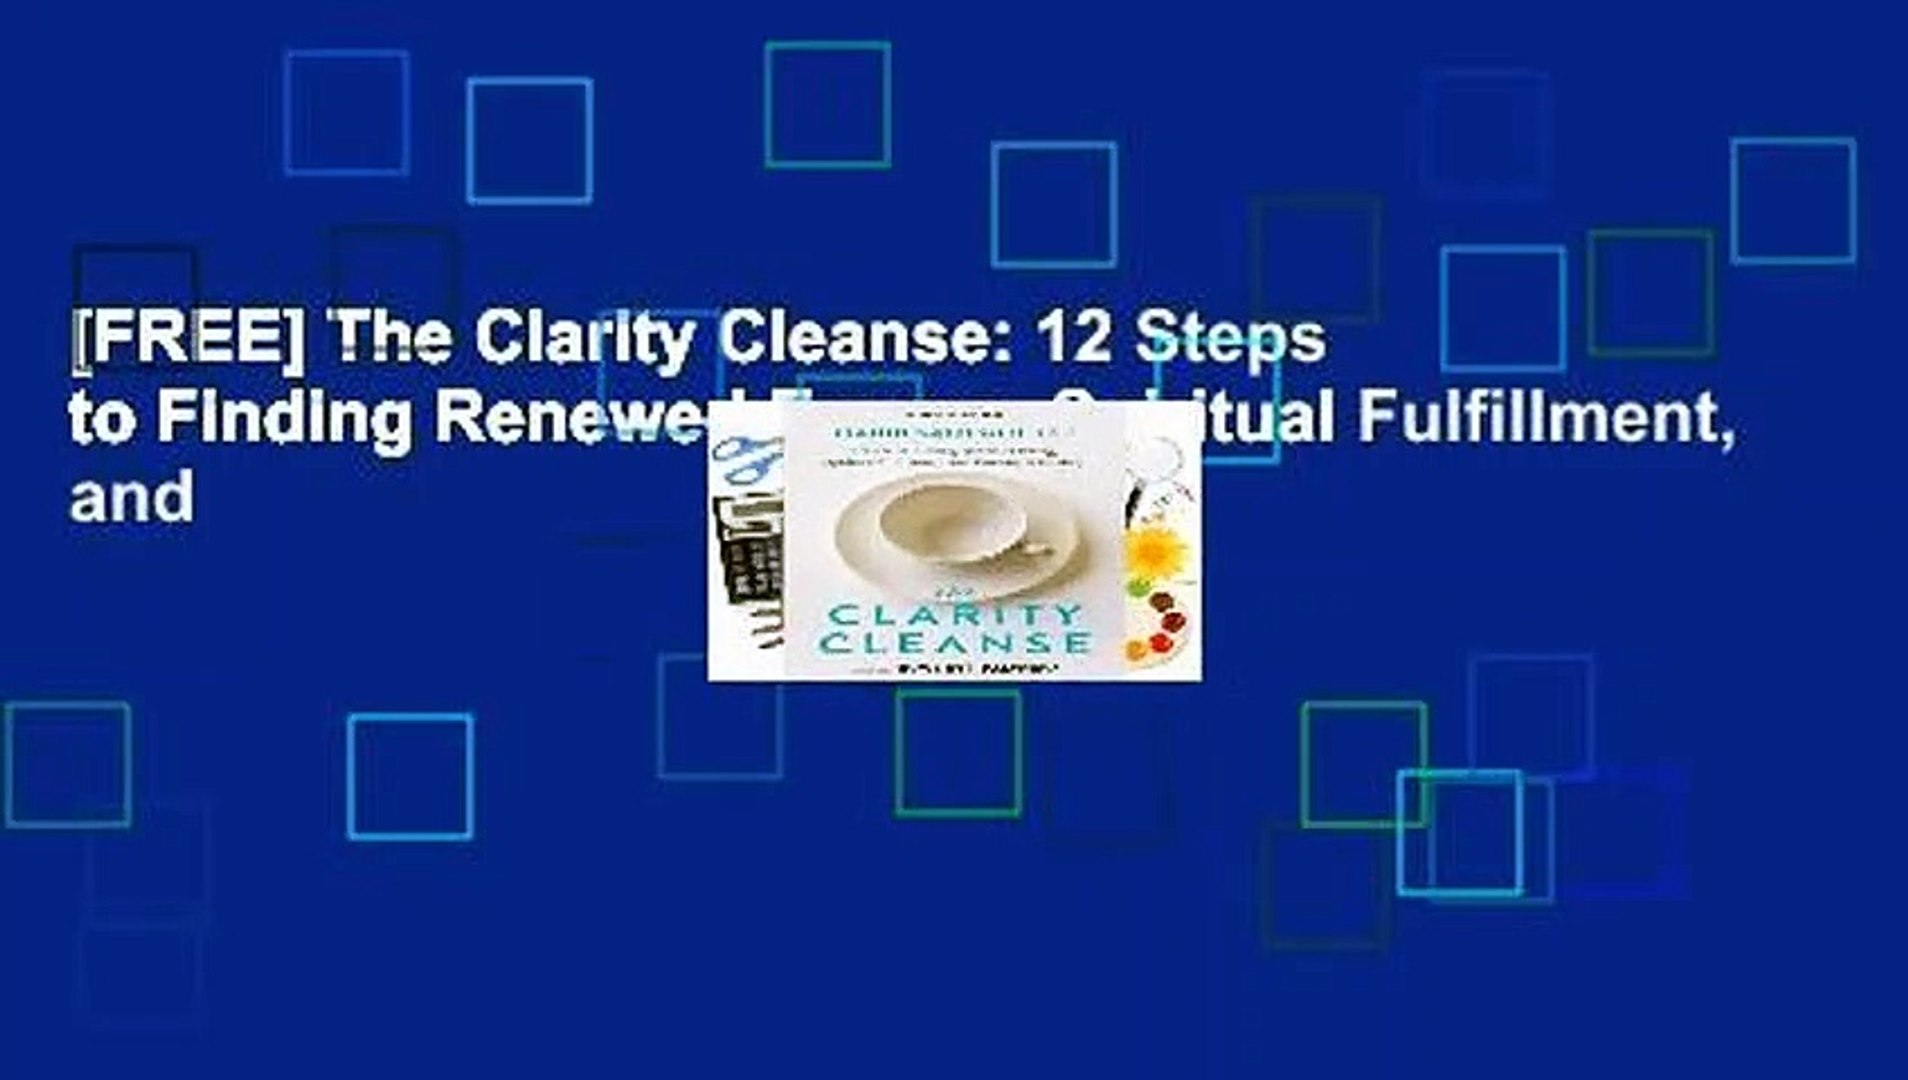 [FREE] The Clarity Cleanse: 12 Steps to Finding Renewed Energy, Spiritual Fulfillment, and